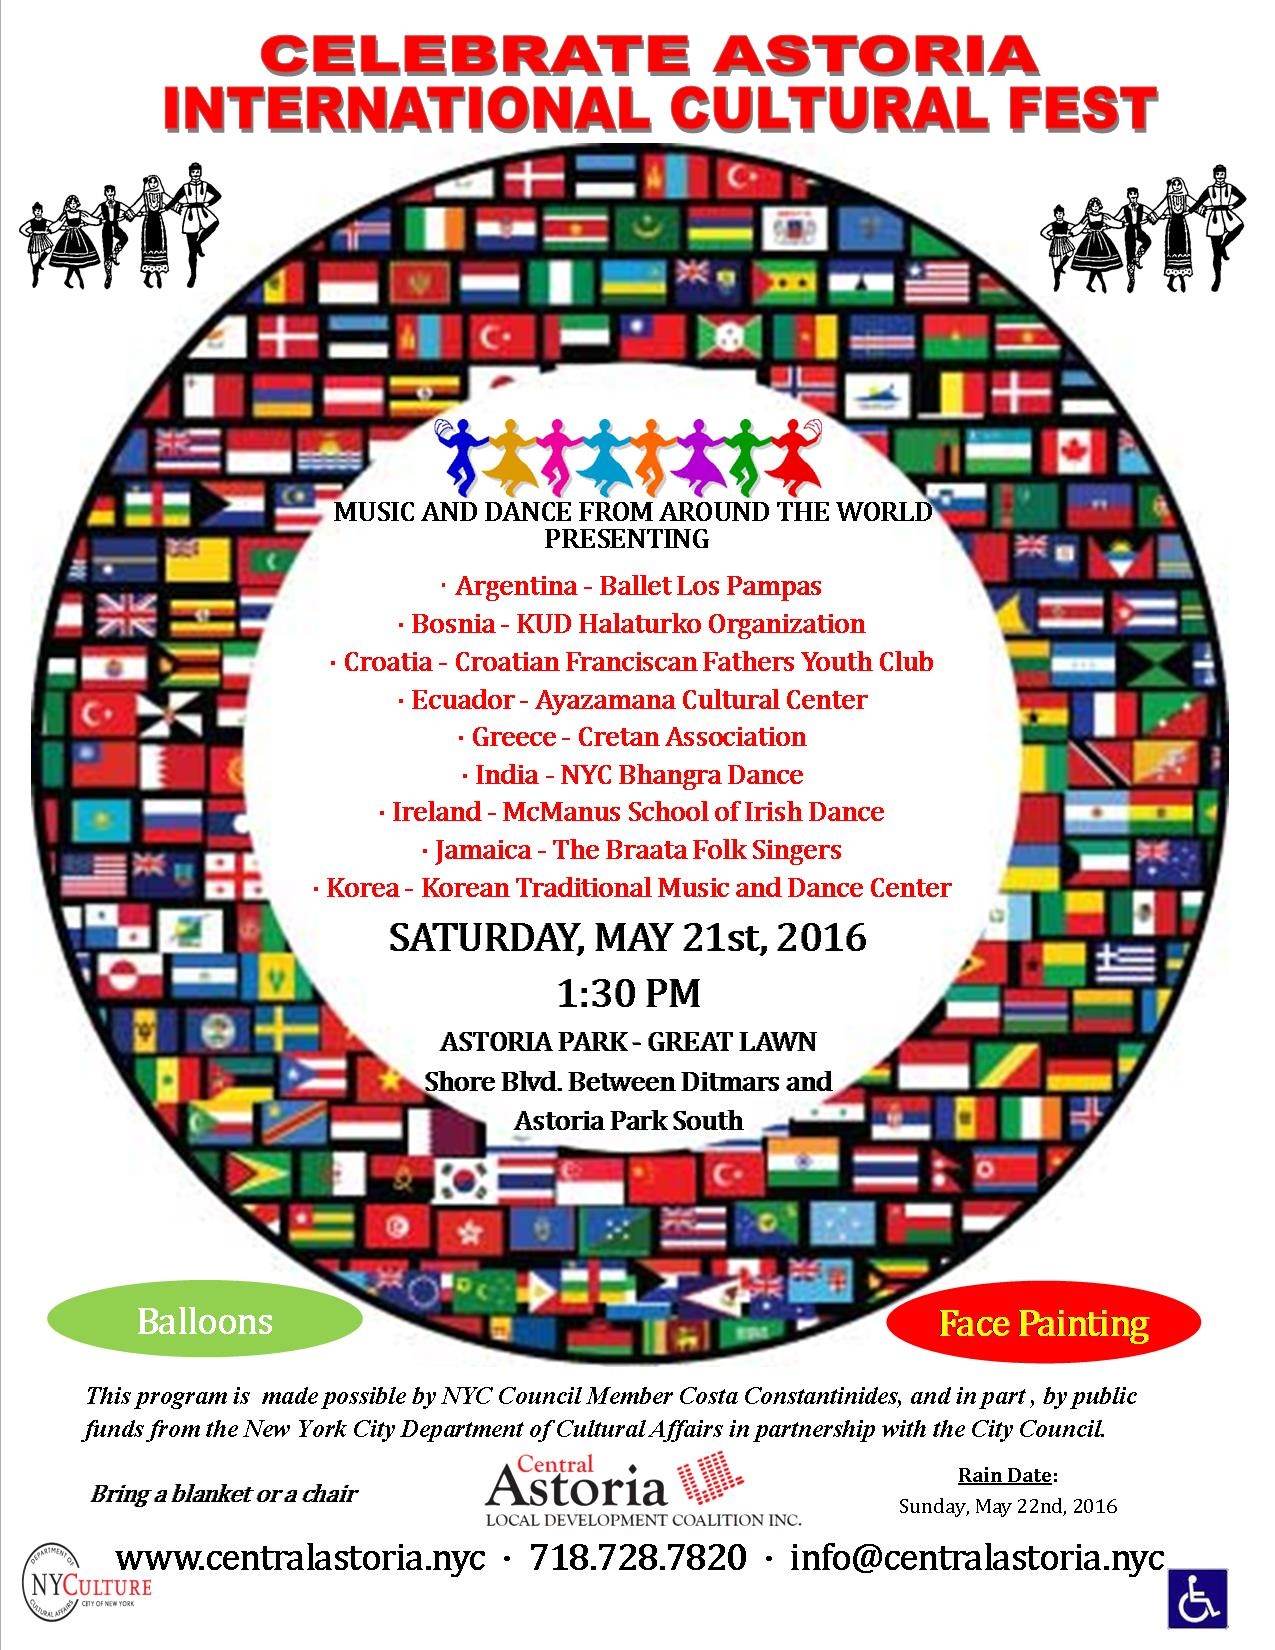 International Cultural Festival Flyer.jpg